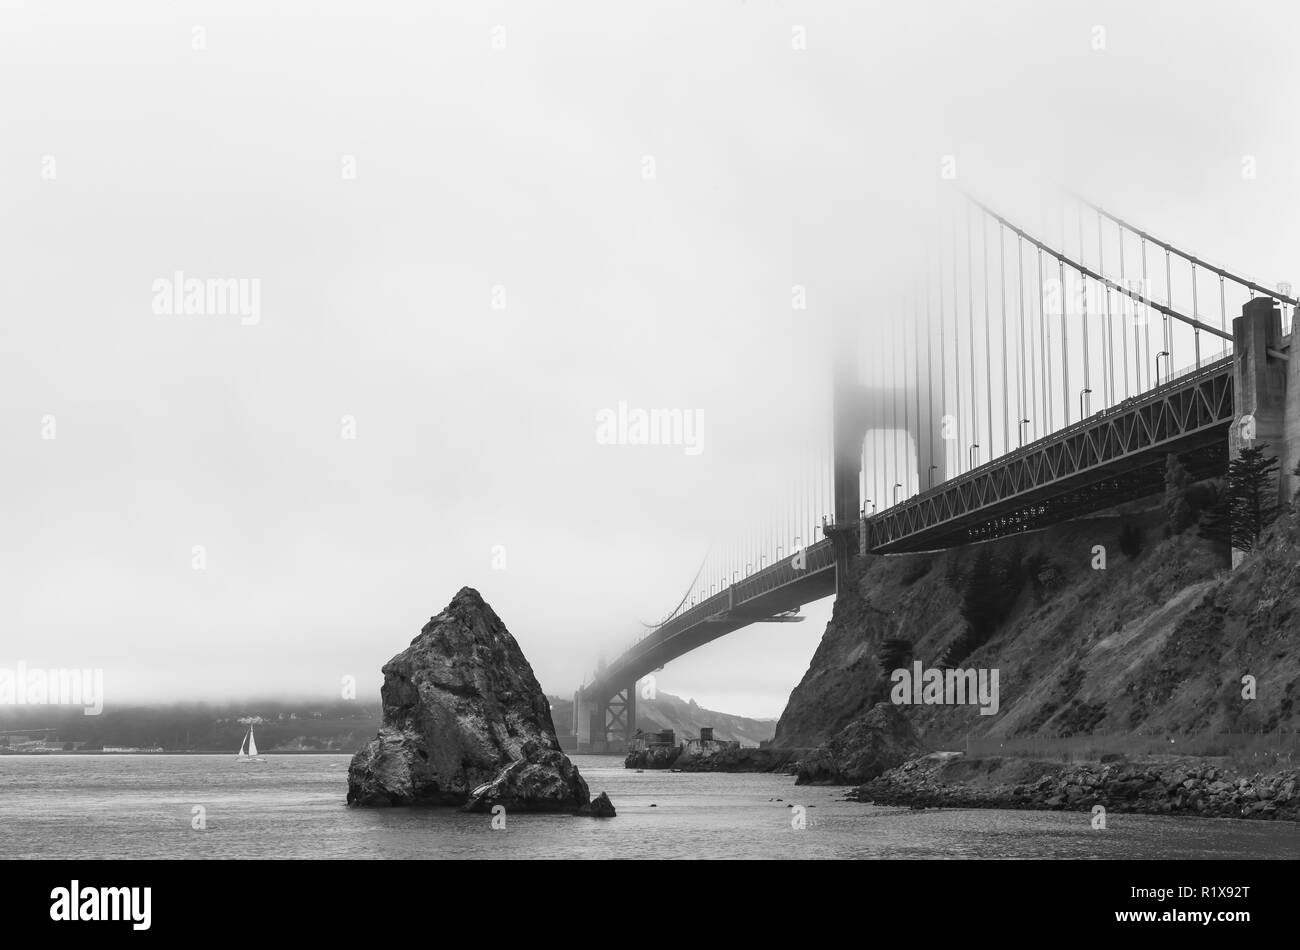 The iconic Golden Gate Bridge in San Francisco, California, United States, on an overcast morning. - Stock Image